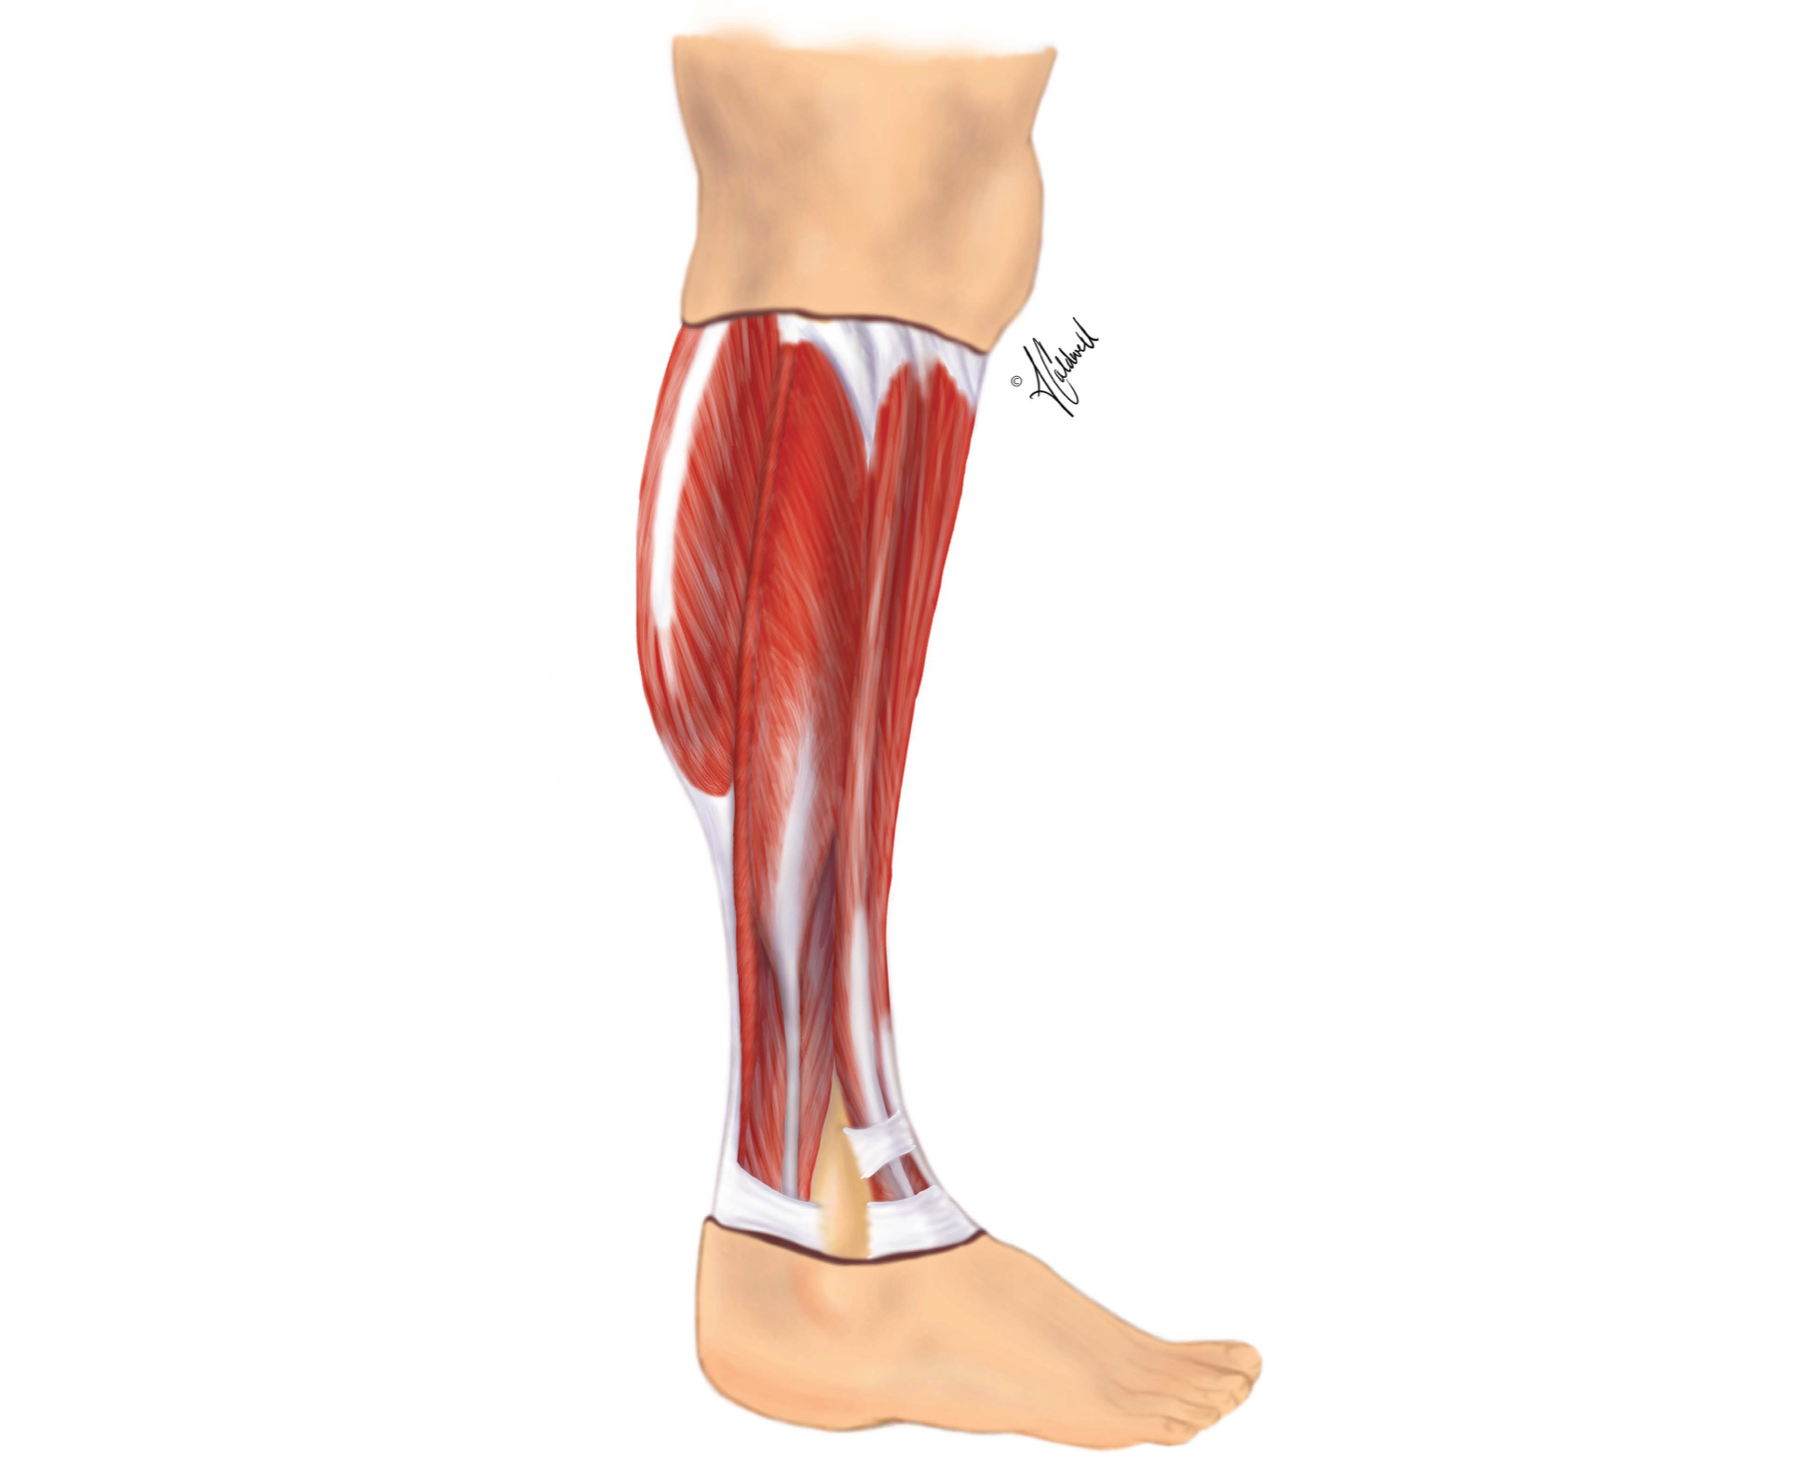 Anatomy of Lower Leg